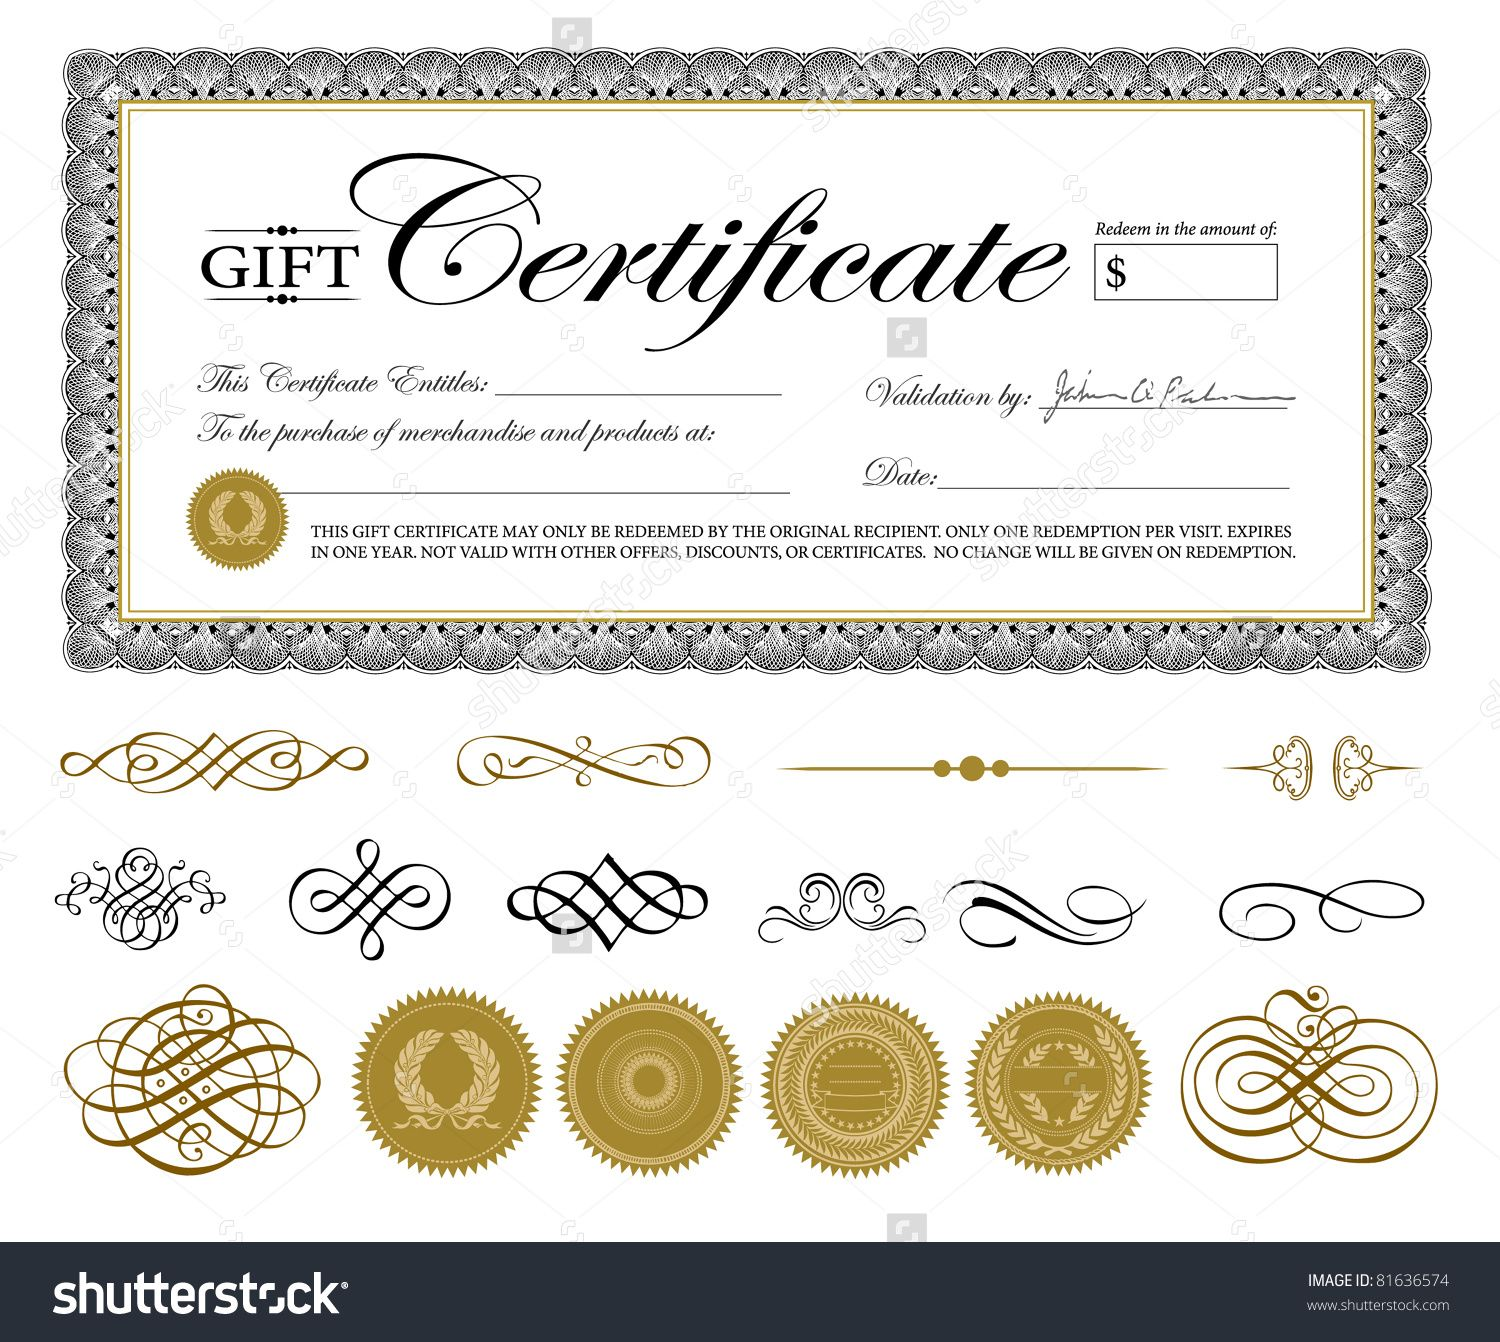 Vector premium certificate template and ornaments easy to edit vector premium certificate template and ornaments easy to edit perfect for gift certificates and yadclub Gallery